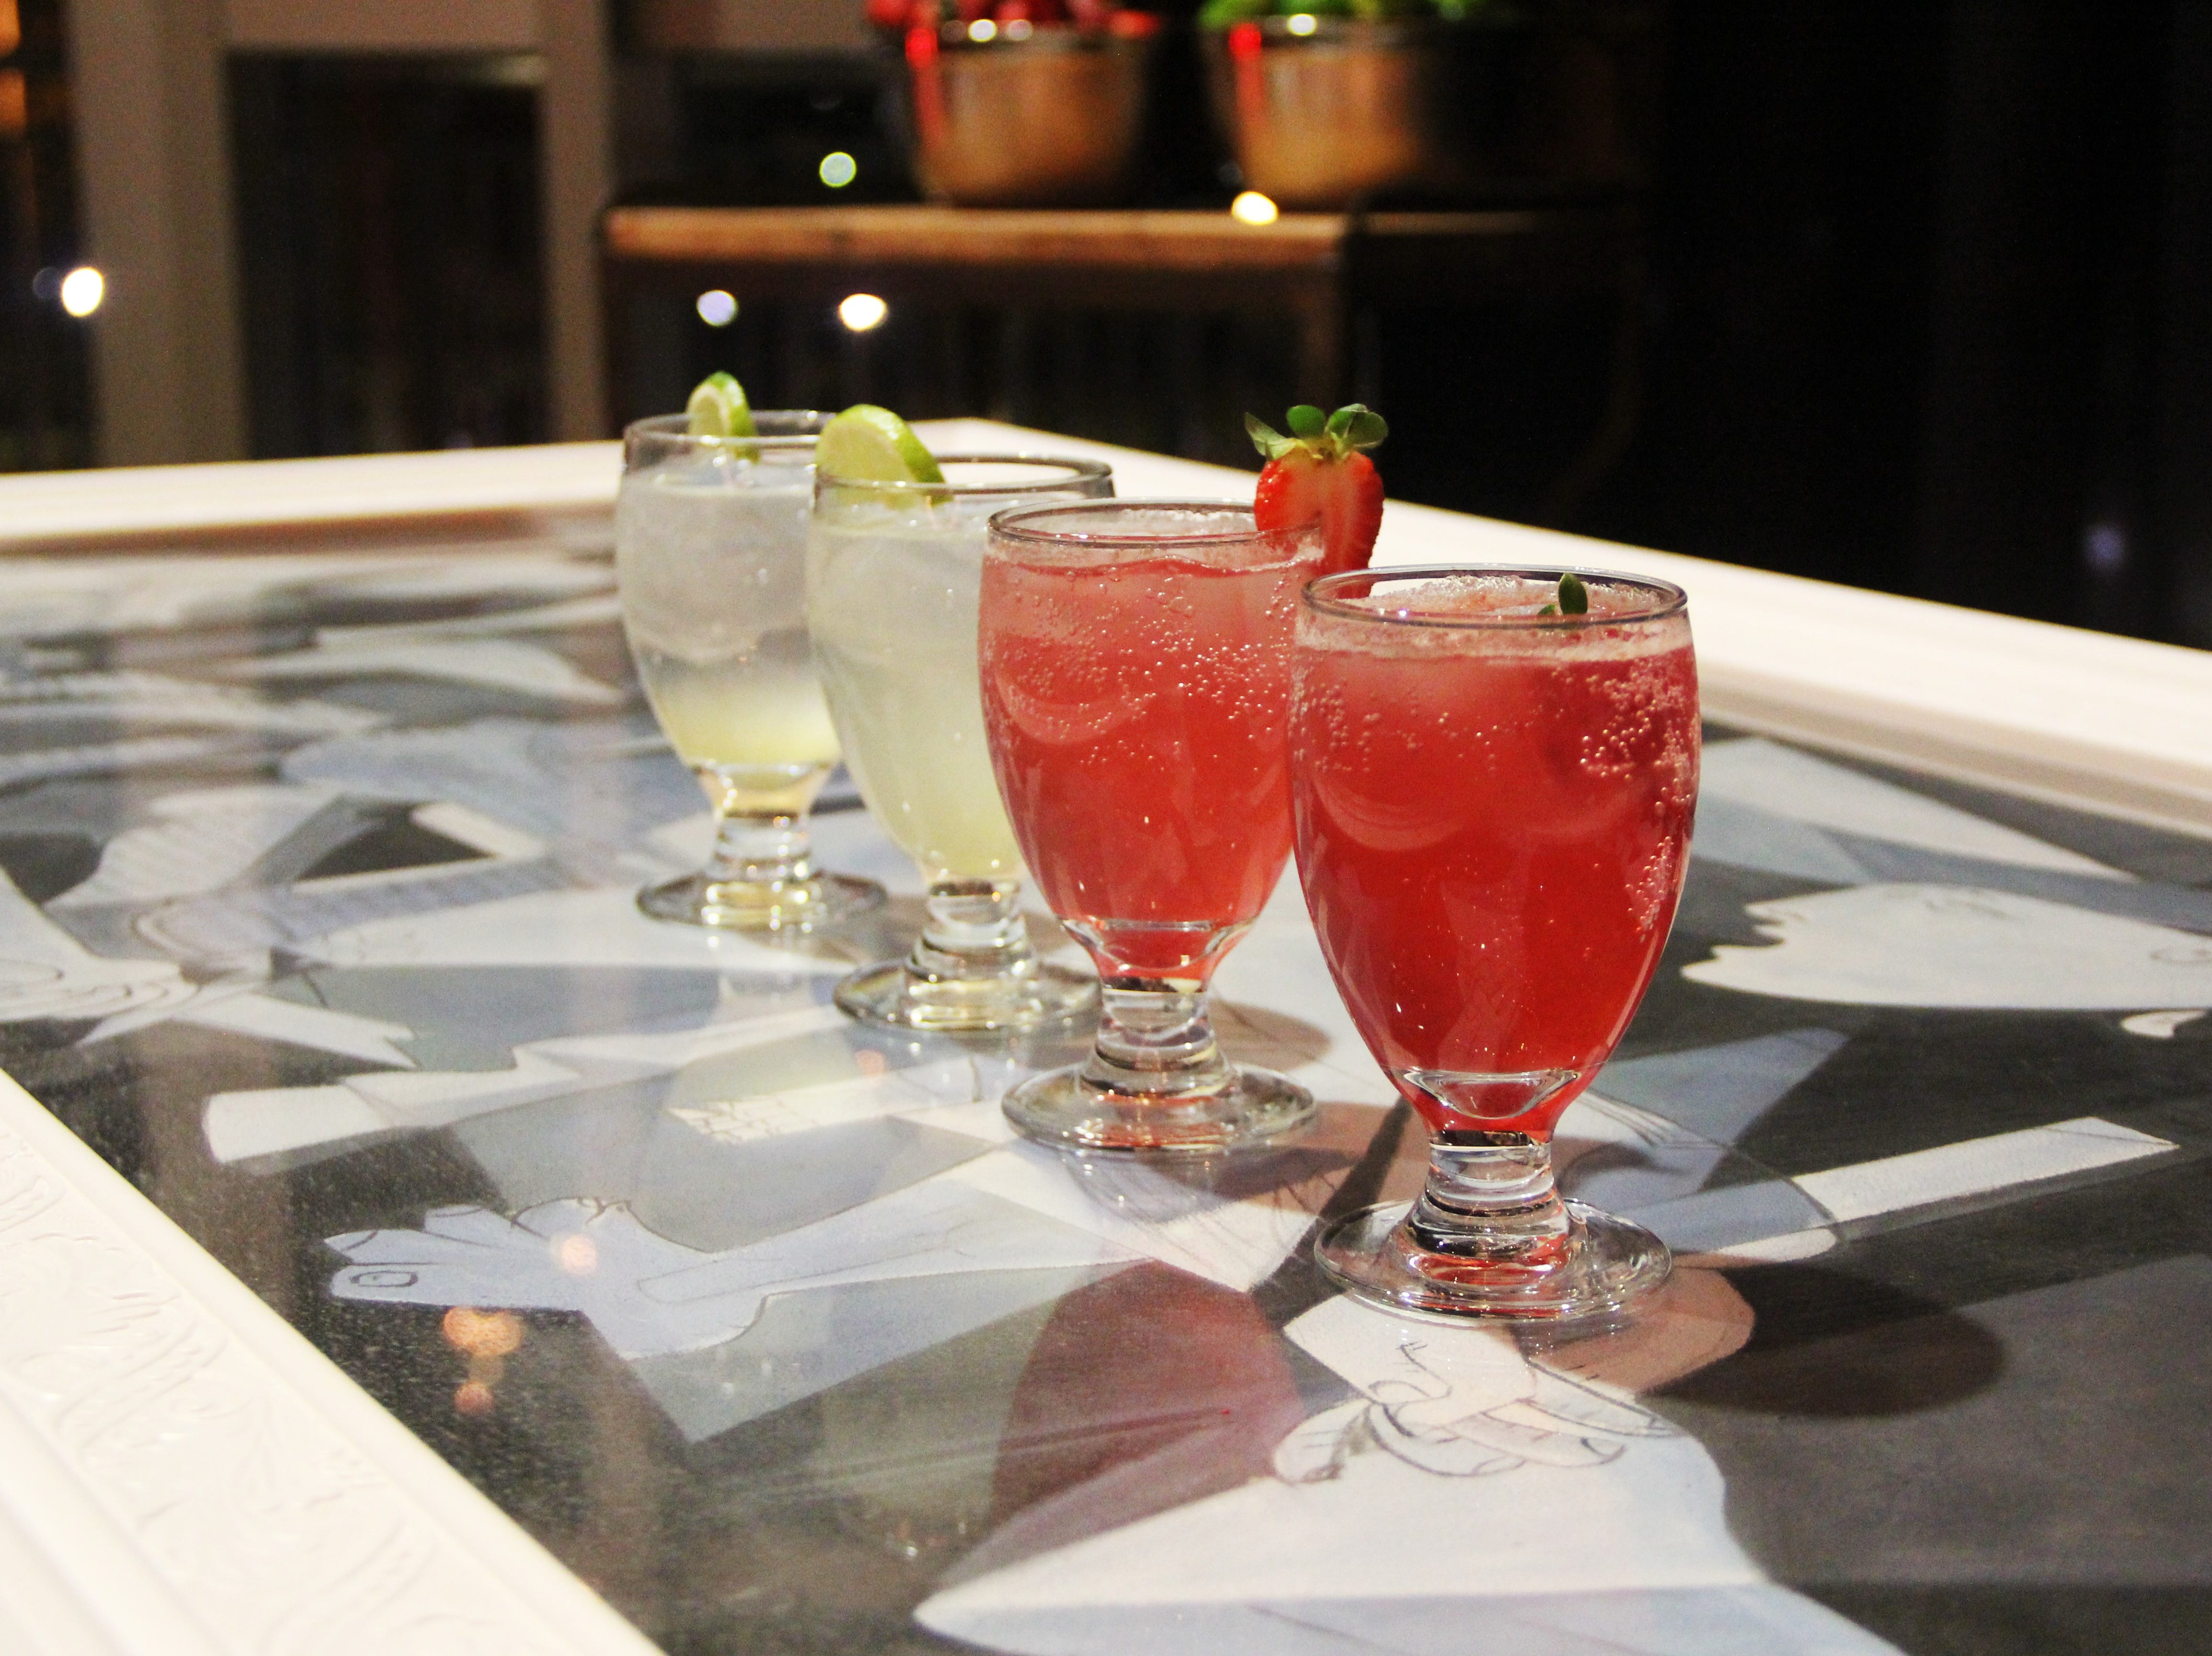 Non-alcoholic shrubs from Taproot Lounge & Cafe at the 20th Annual Clay Ball on Saturday, Feb. 23.